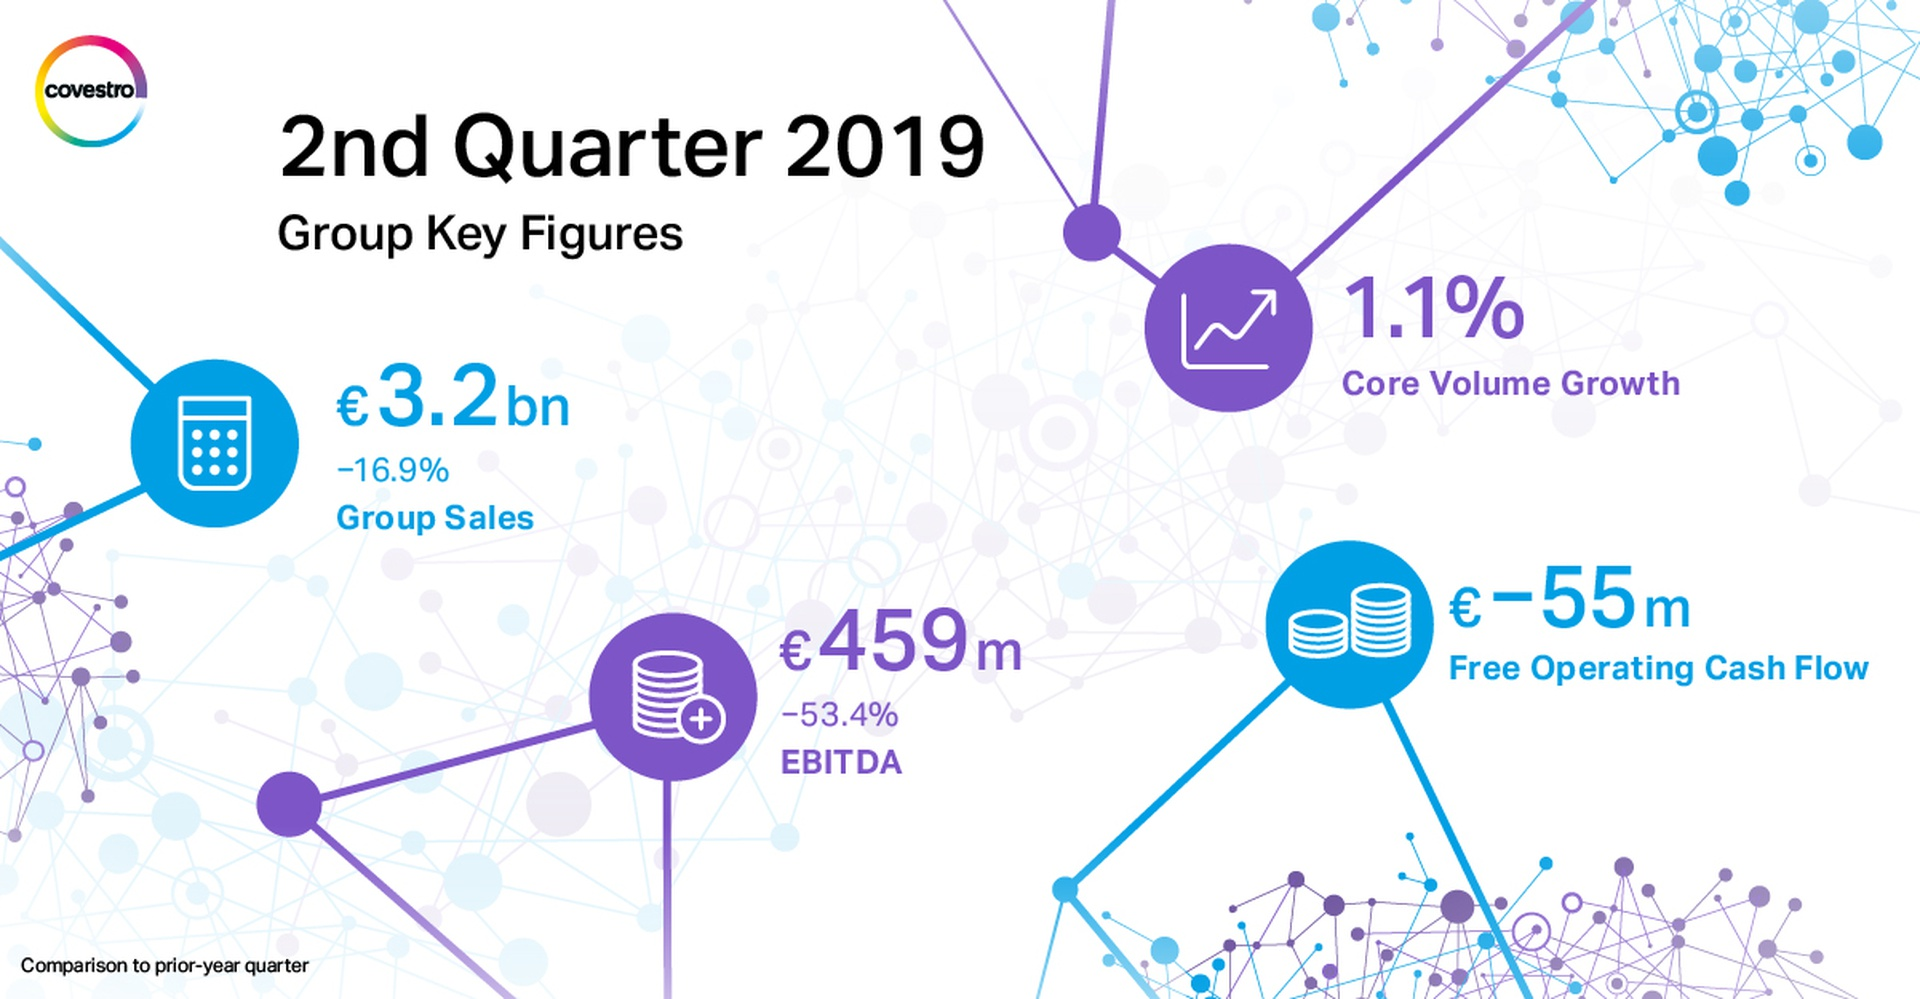 Group Key Figures of the second quarter 2019